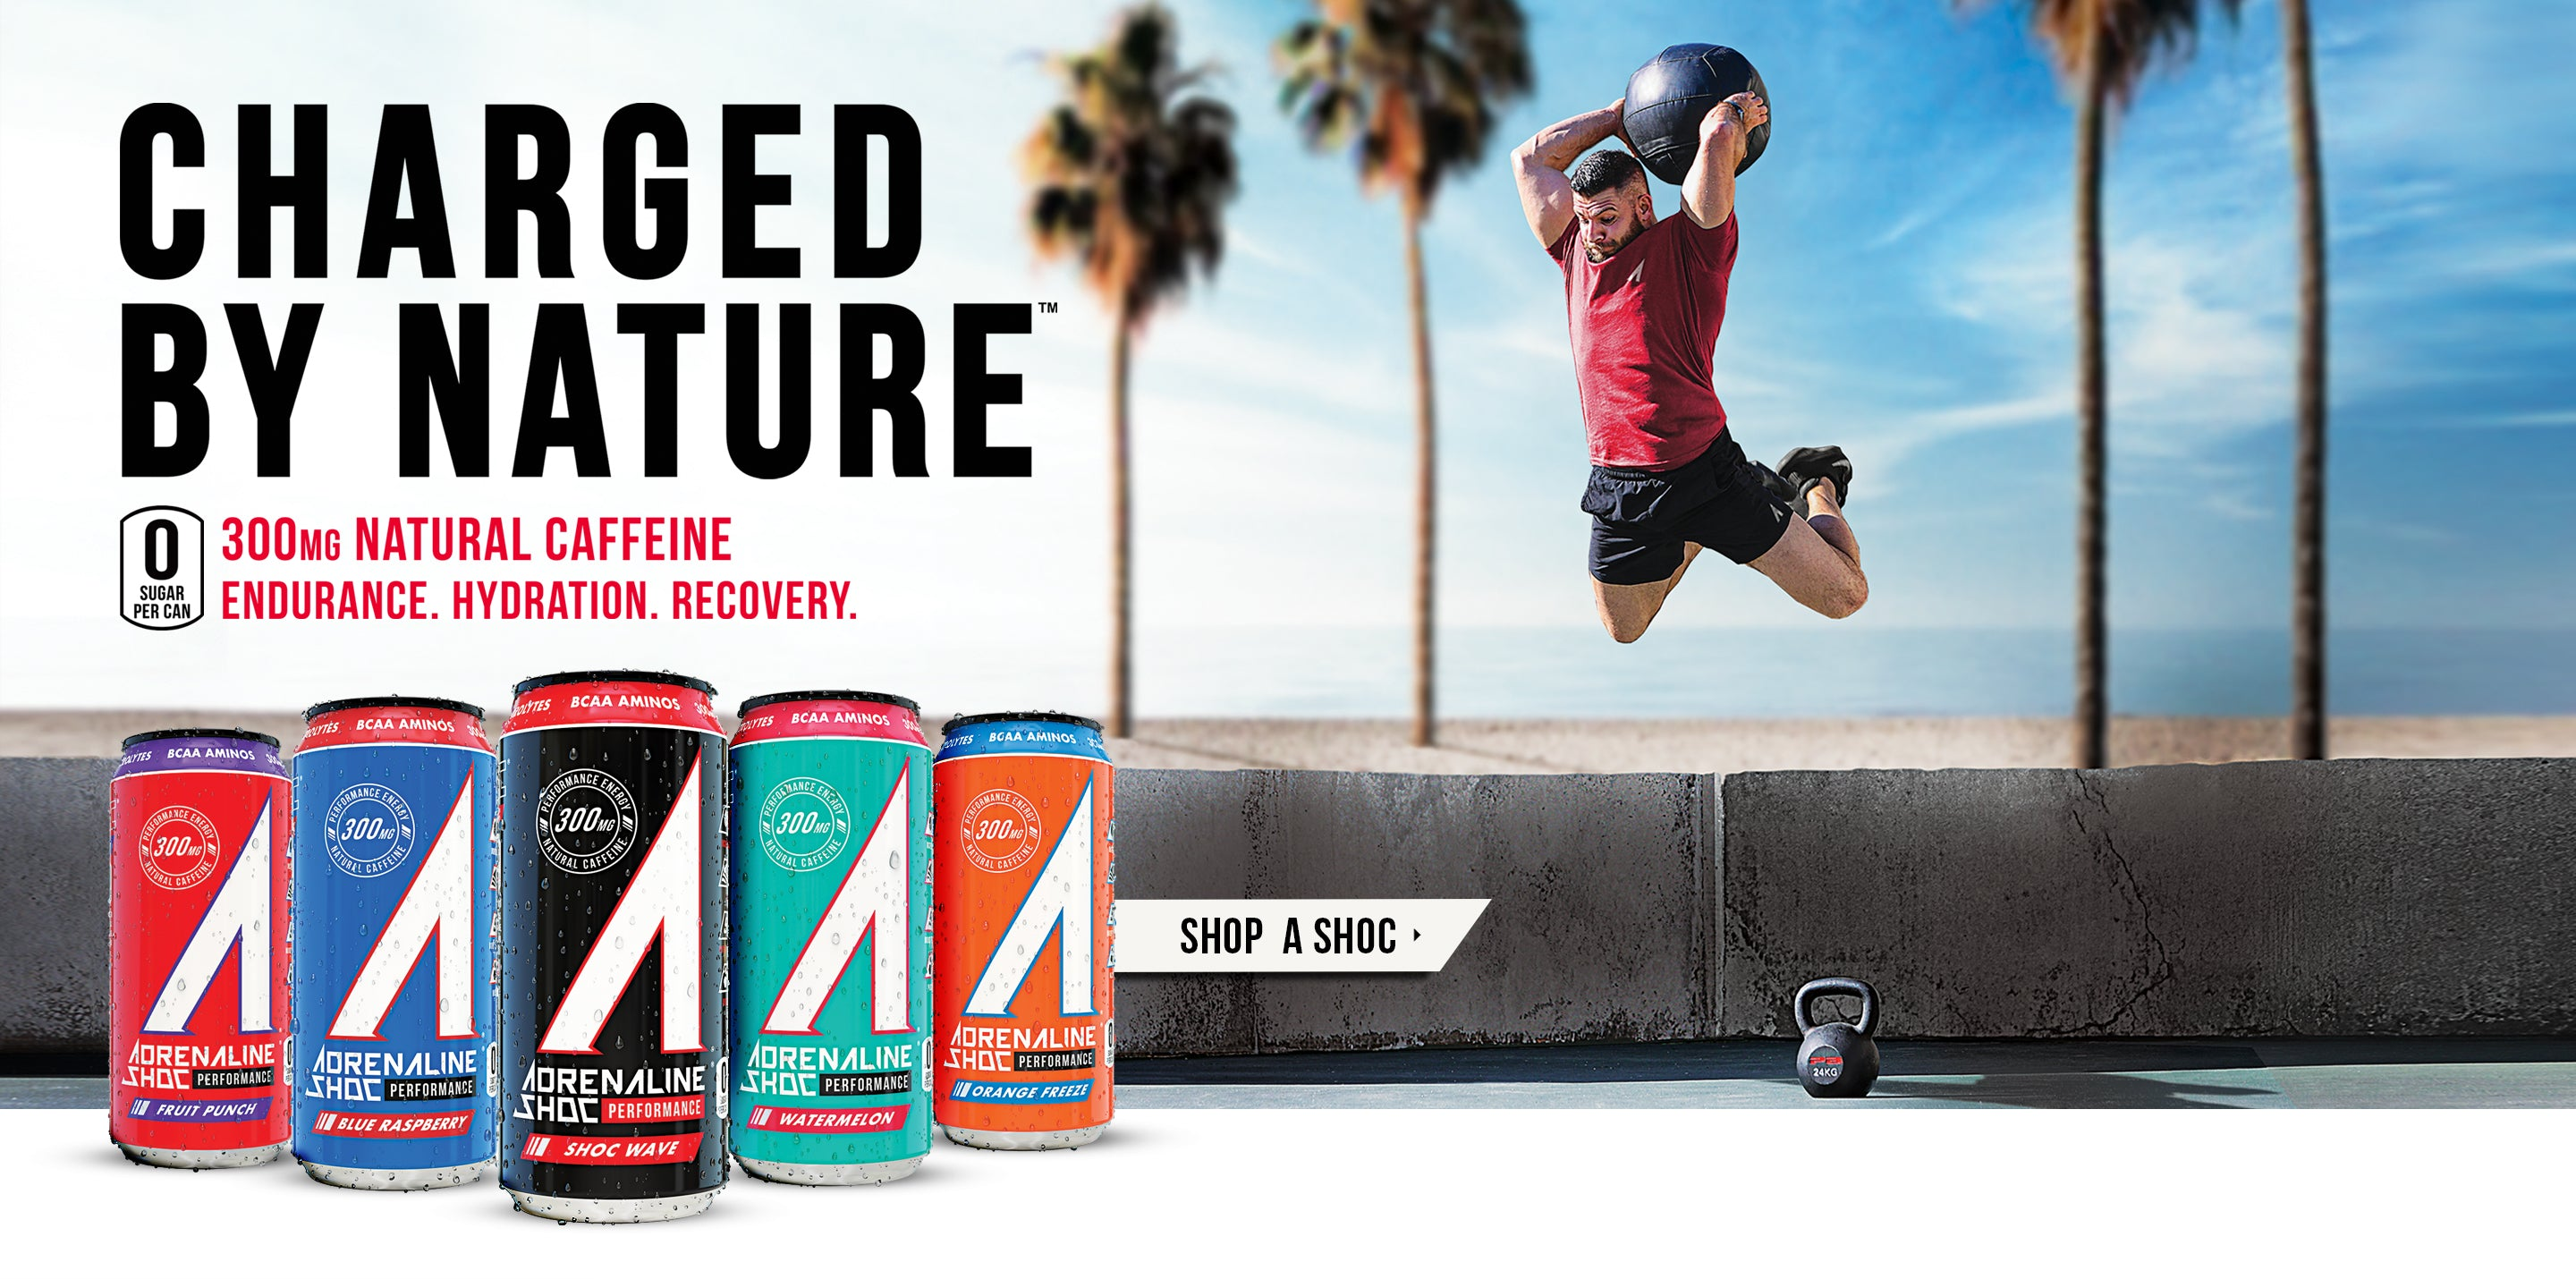 Charged by nature. 300mg of natural caffeine. Endurance. Hydration. Recovery.